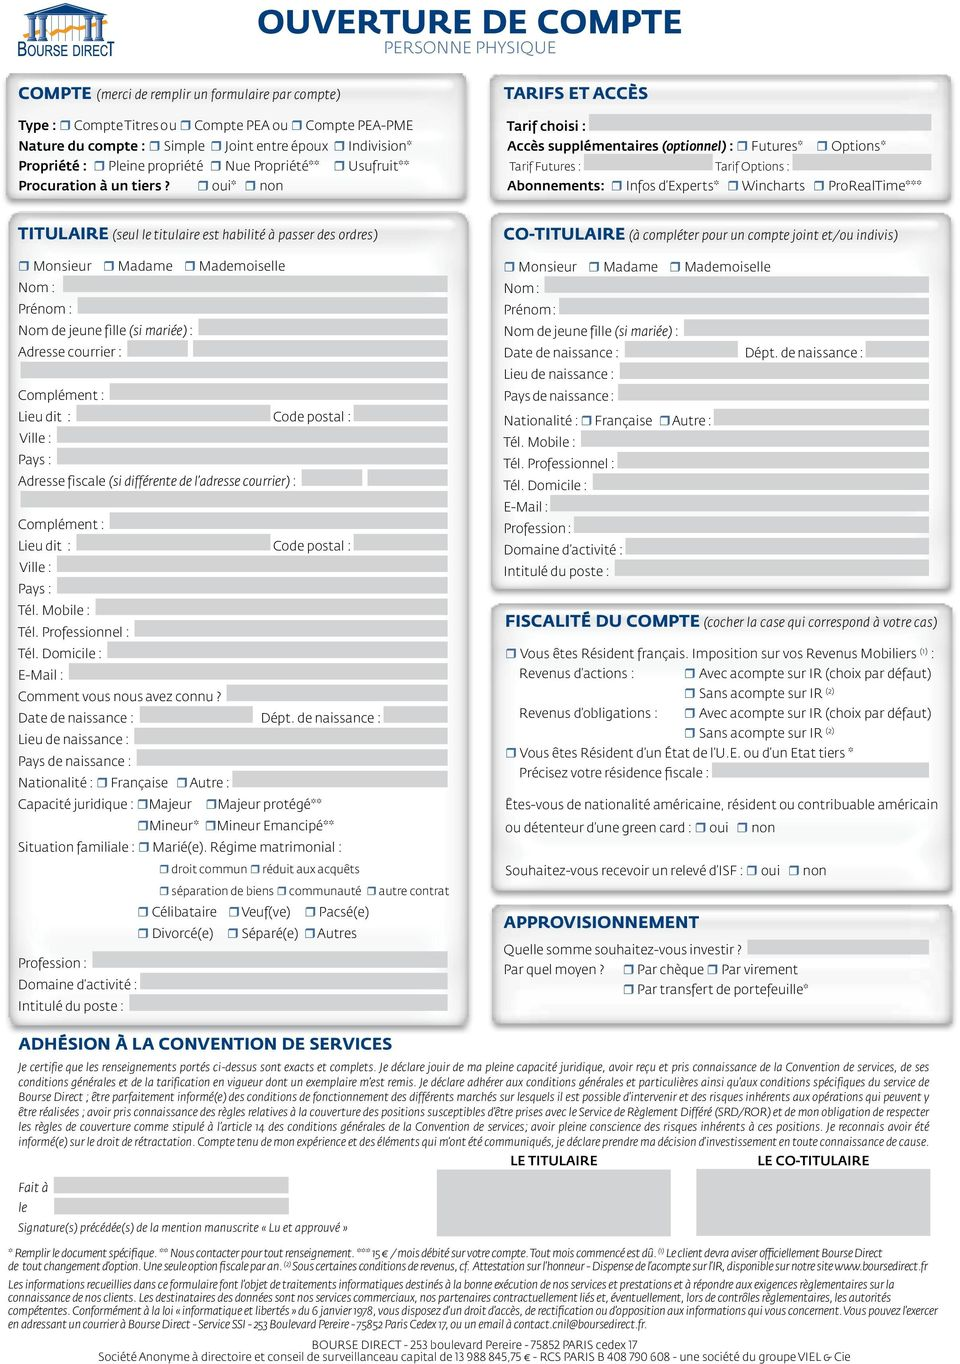 oui* non TARIFS ET ACCÈS Tarif choisi : Accès supplémentaires (optionnel) : Futures* Options* Tarif Futures : Tarif Options : Abonnements: Infos d Experts* Wincharts ProRealTime*** TITULAIRE (seul le